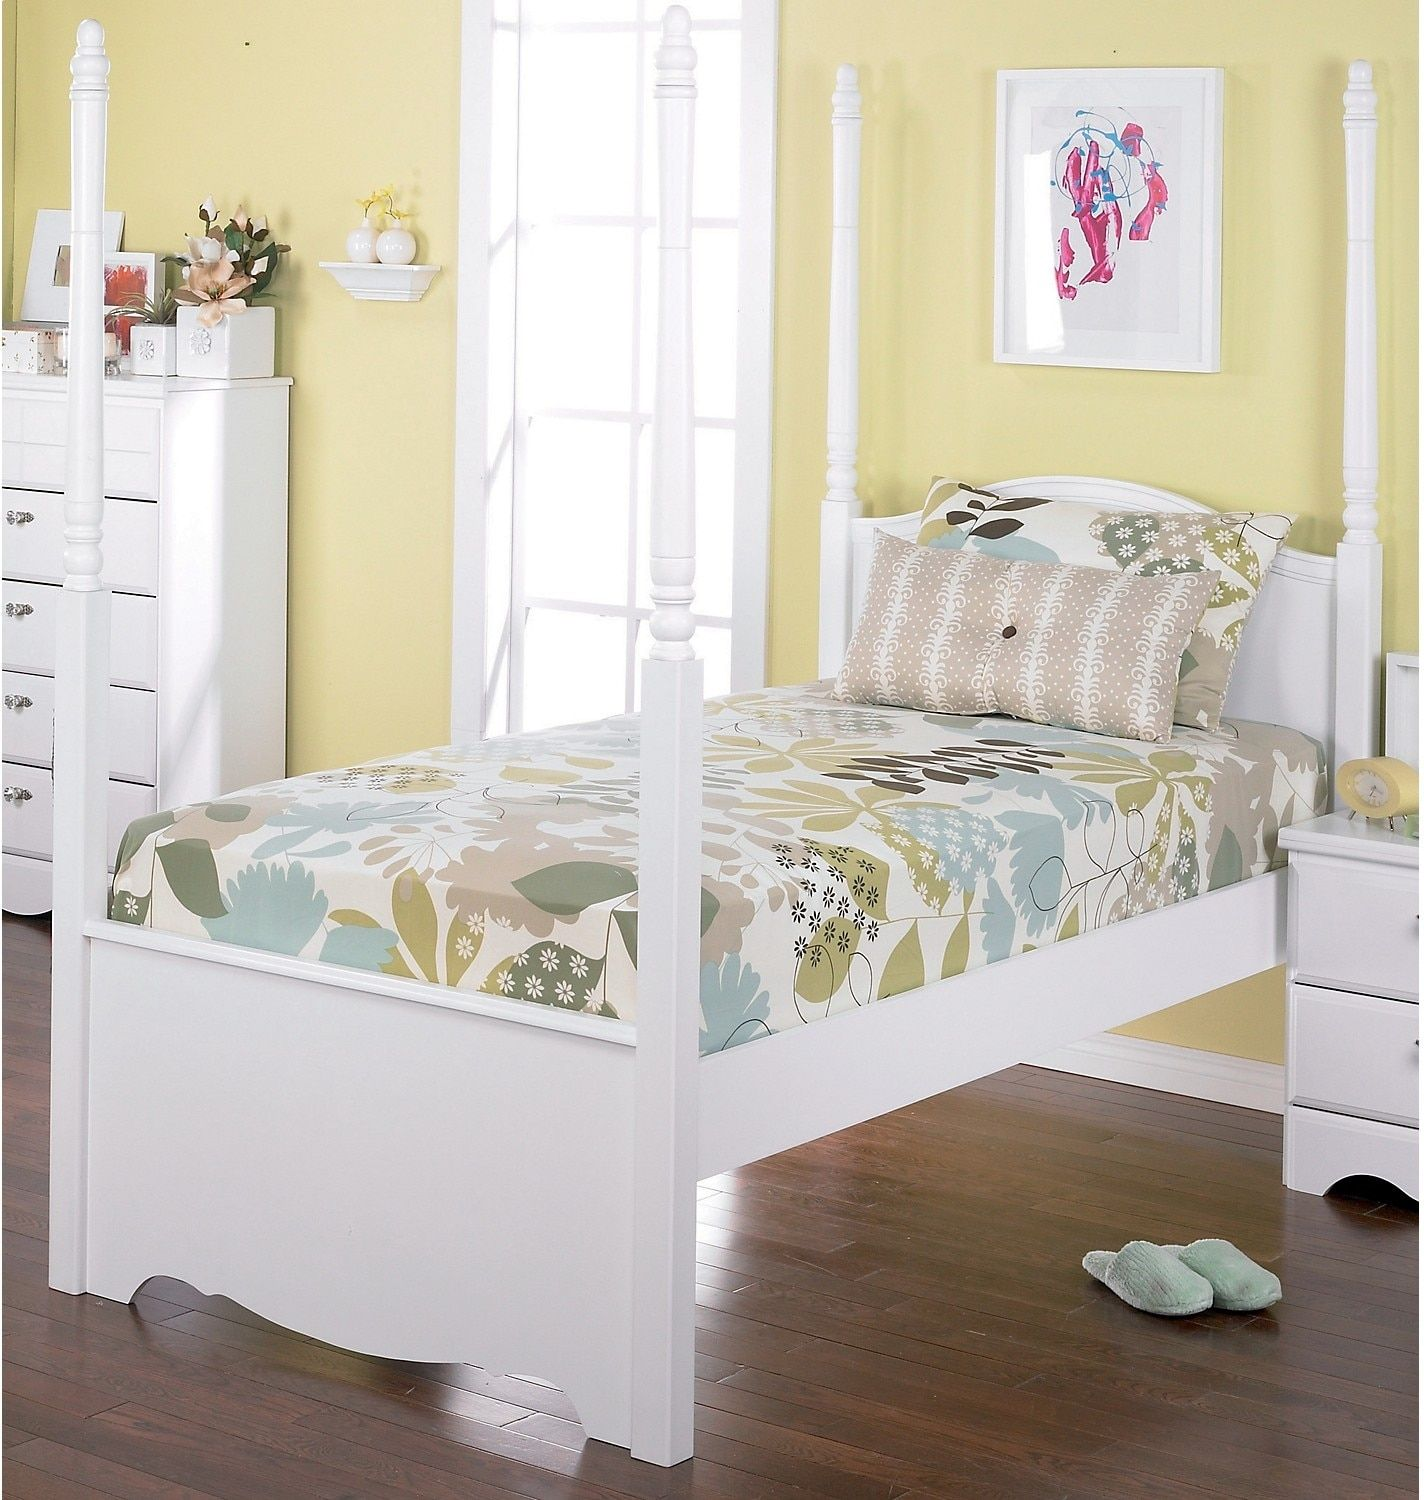 diamond dreams twin canopy bed twin canopy bed canopy and twins